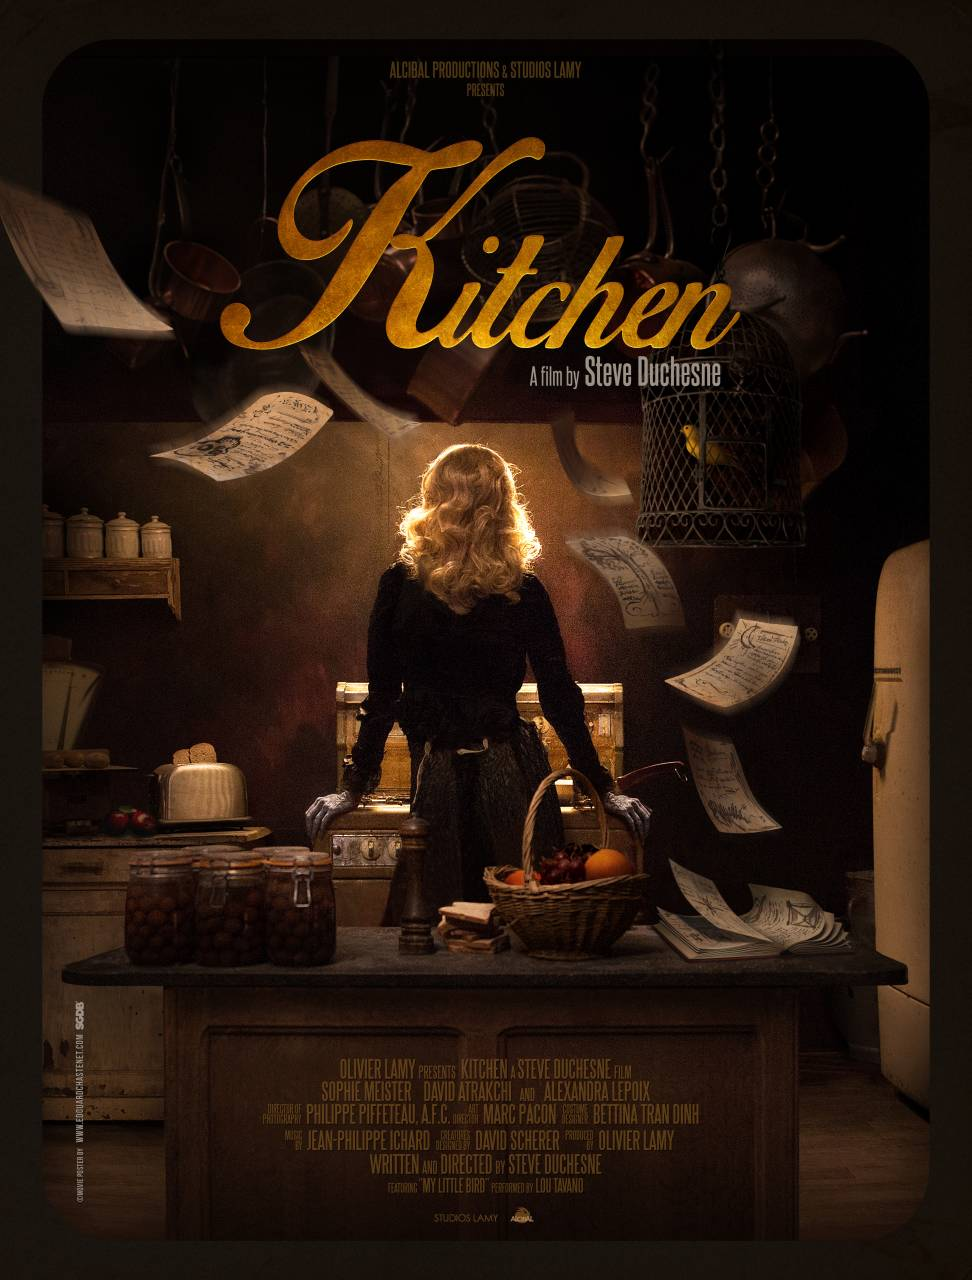 Kitchen a film by Steve Duchesne.